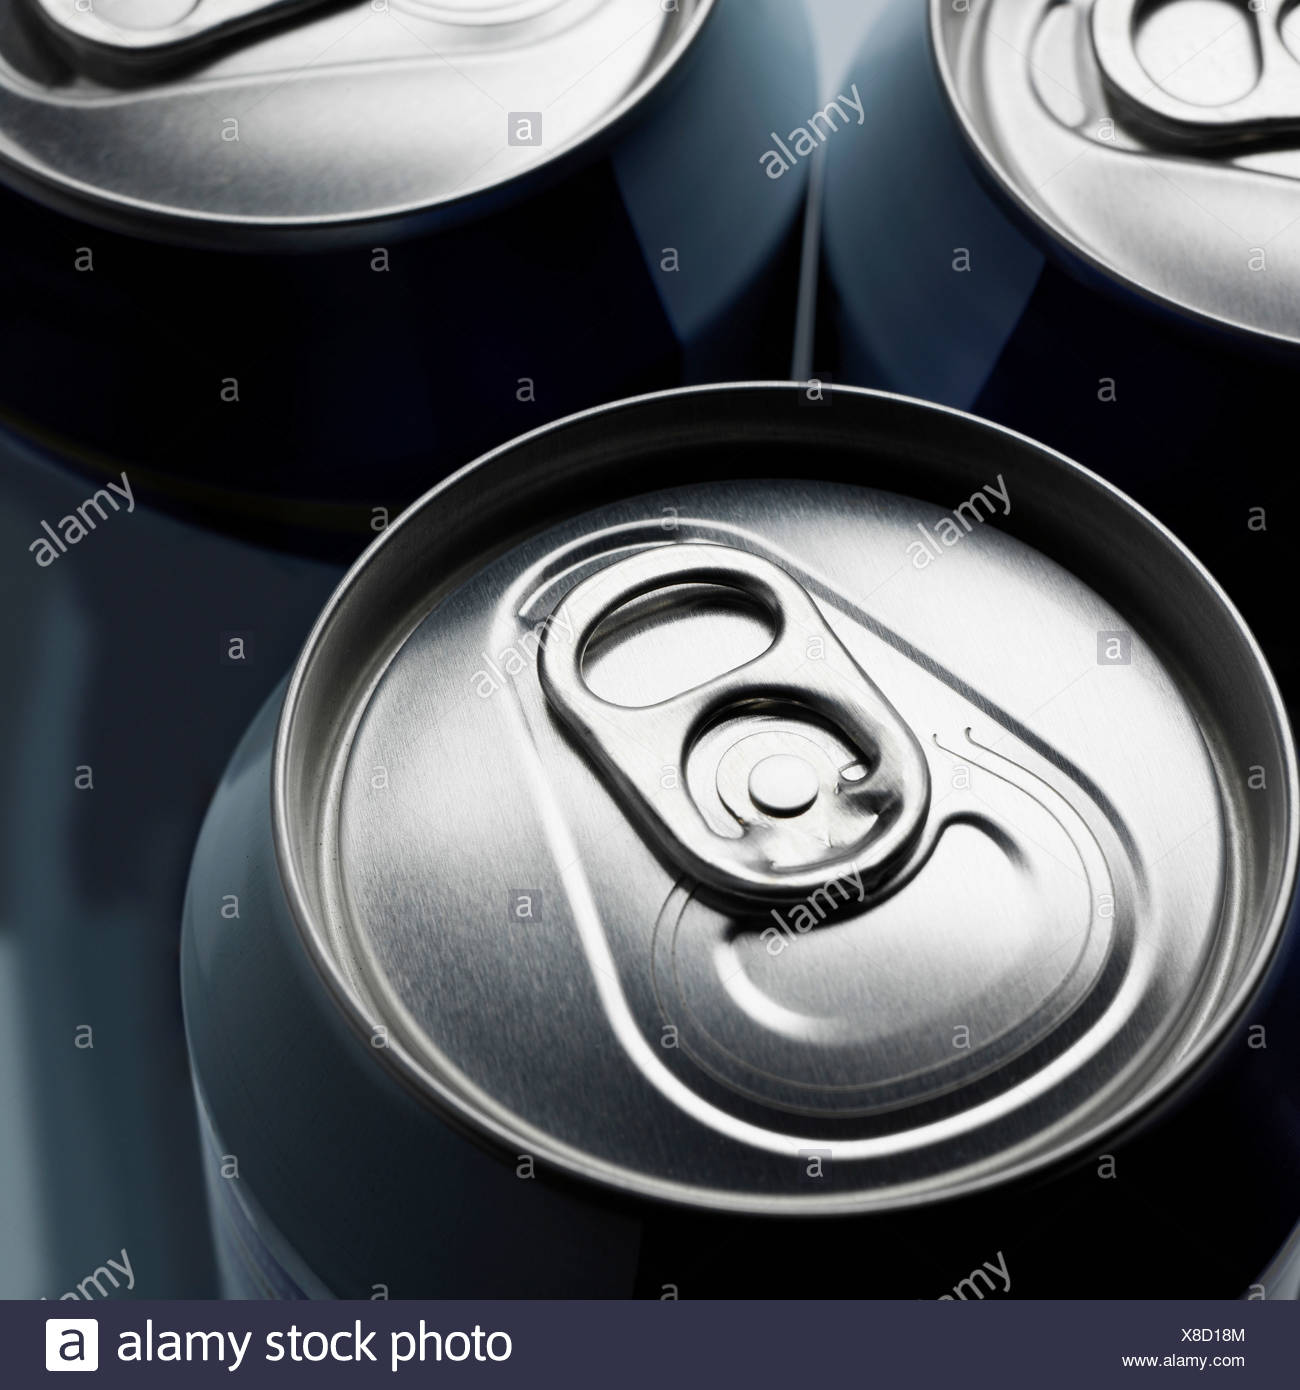 Unopened canned drink - Stock Image